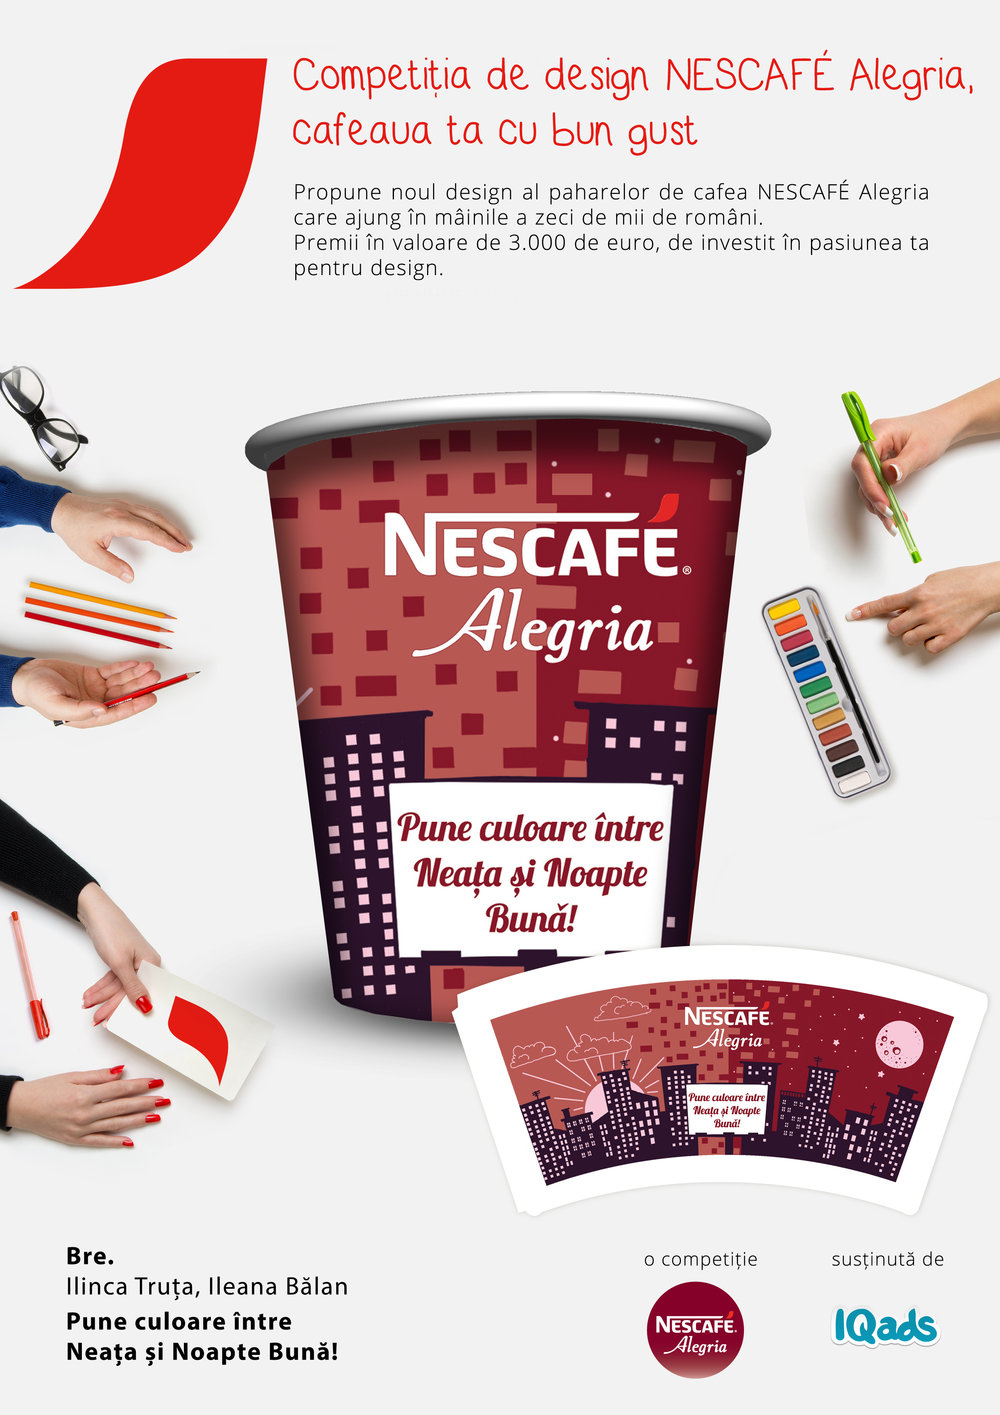 Bre_Nescafe_Alegria_competition_template_design.jpg